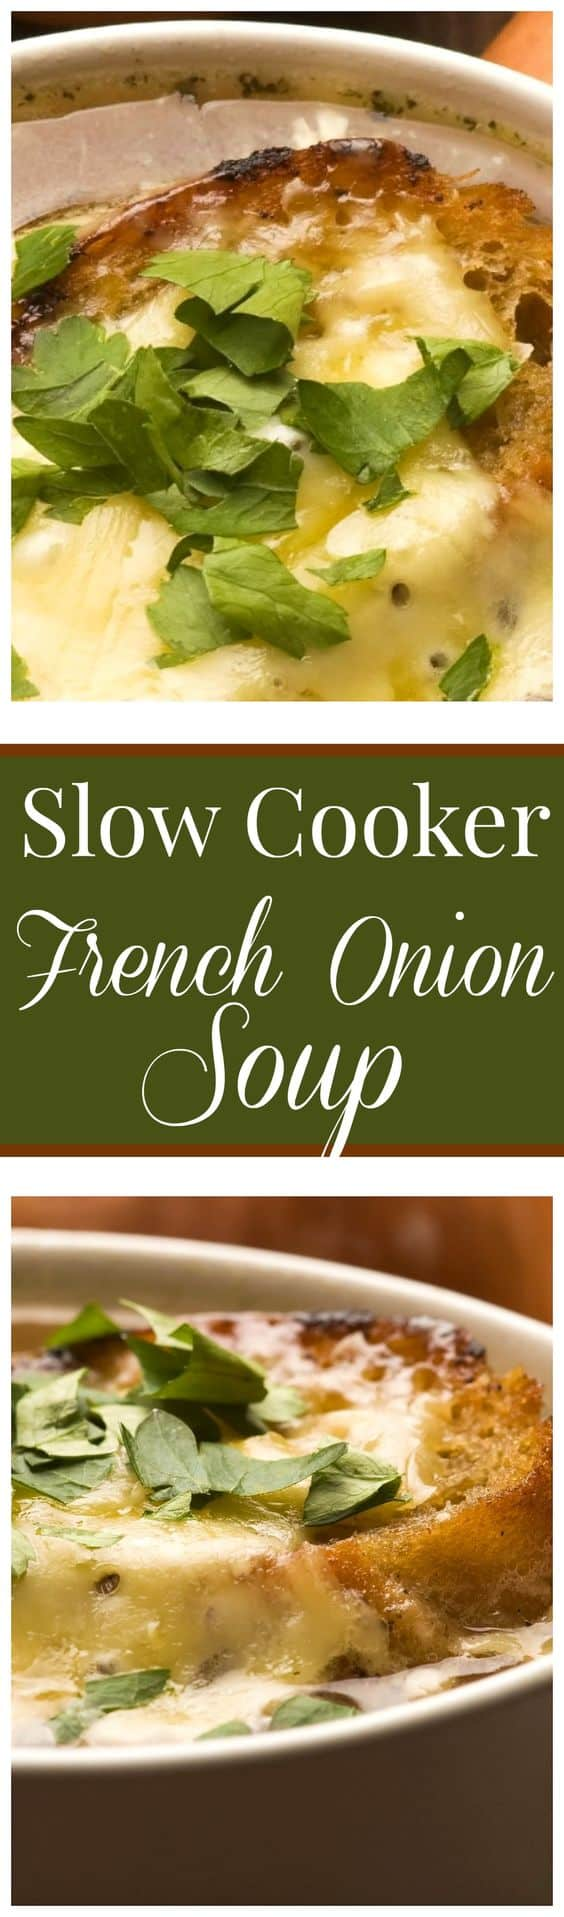 Slow Cooker French Onion Soup: The classic French Onion Soup made in the slow cooker.